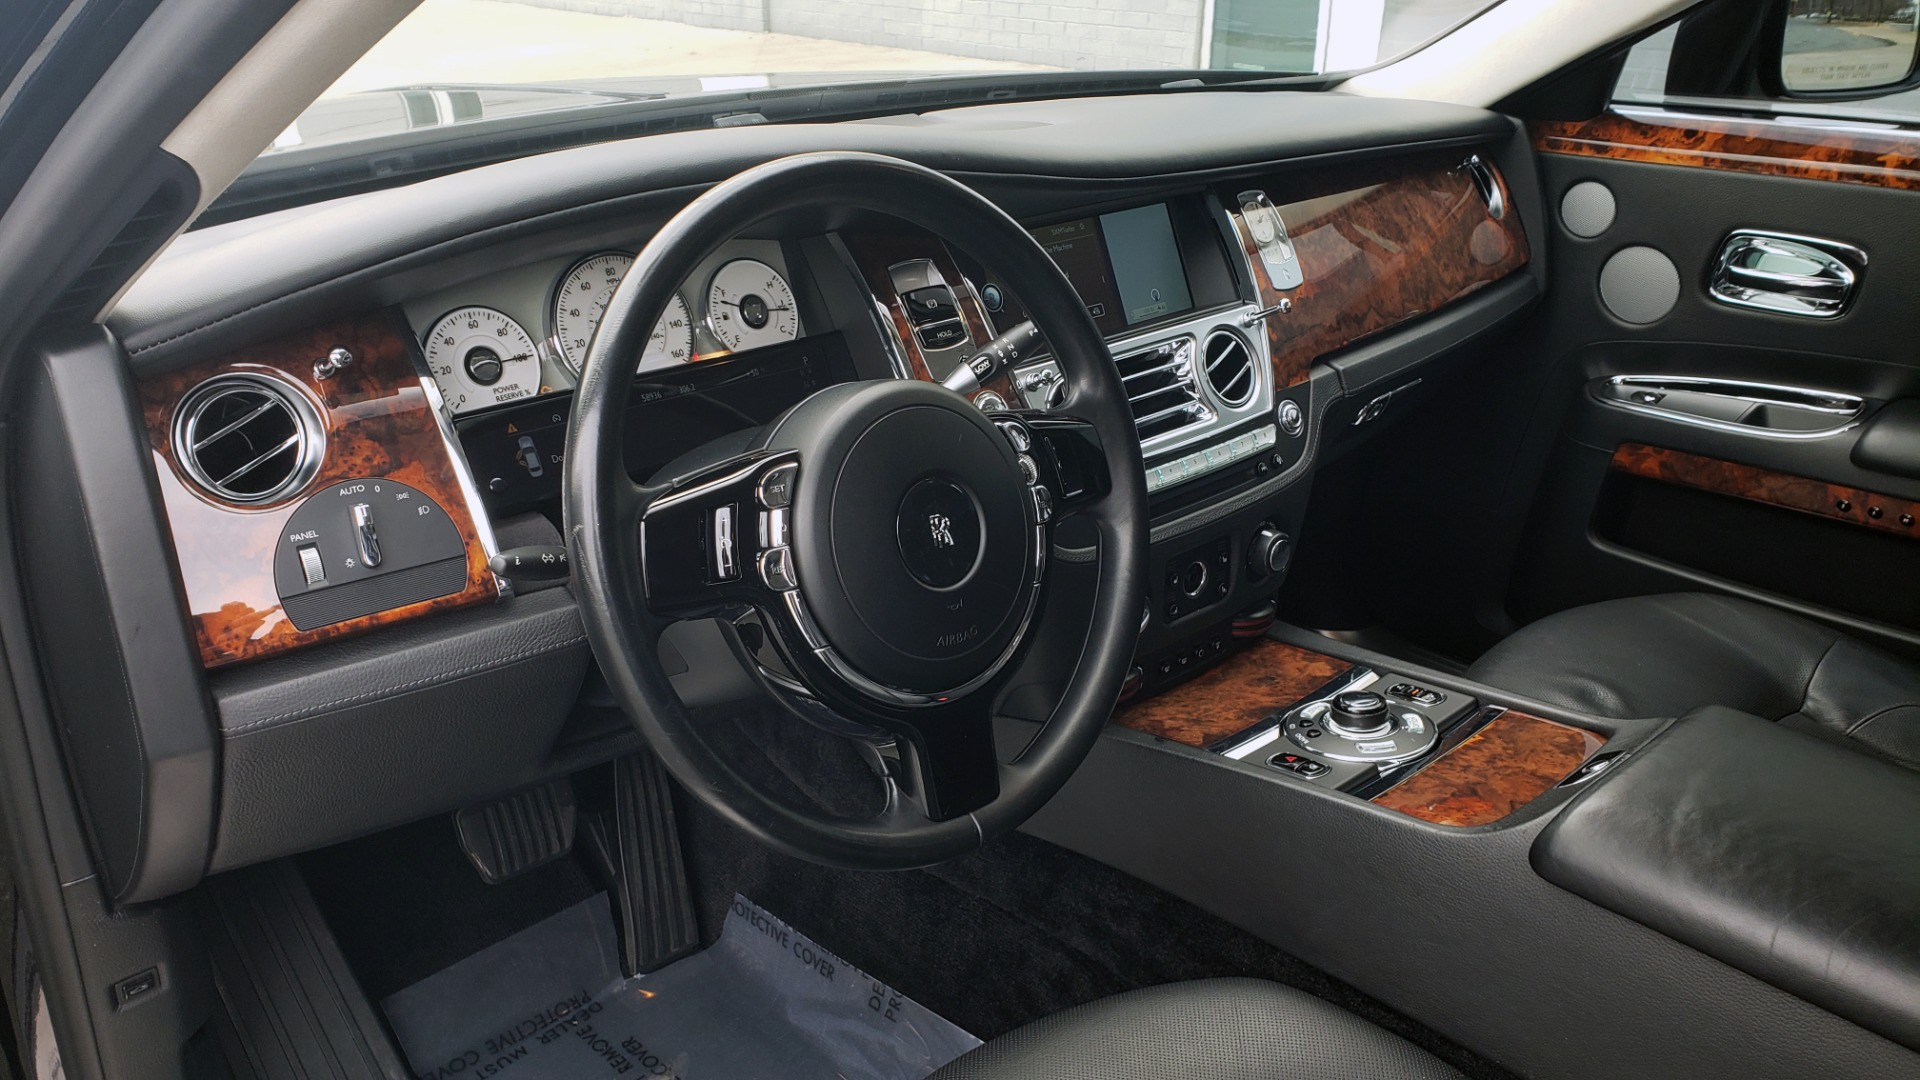 Used 2010 Rolls-Royce GHOST 6.6L TURBO V12 (563HP) / NAV / SUNROOF / SUICIDE DOORS for sale $89,000 at Formula Imports in Charlotte NC 28227 13